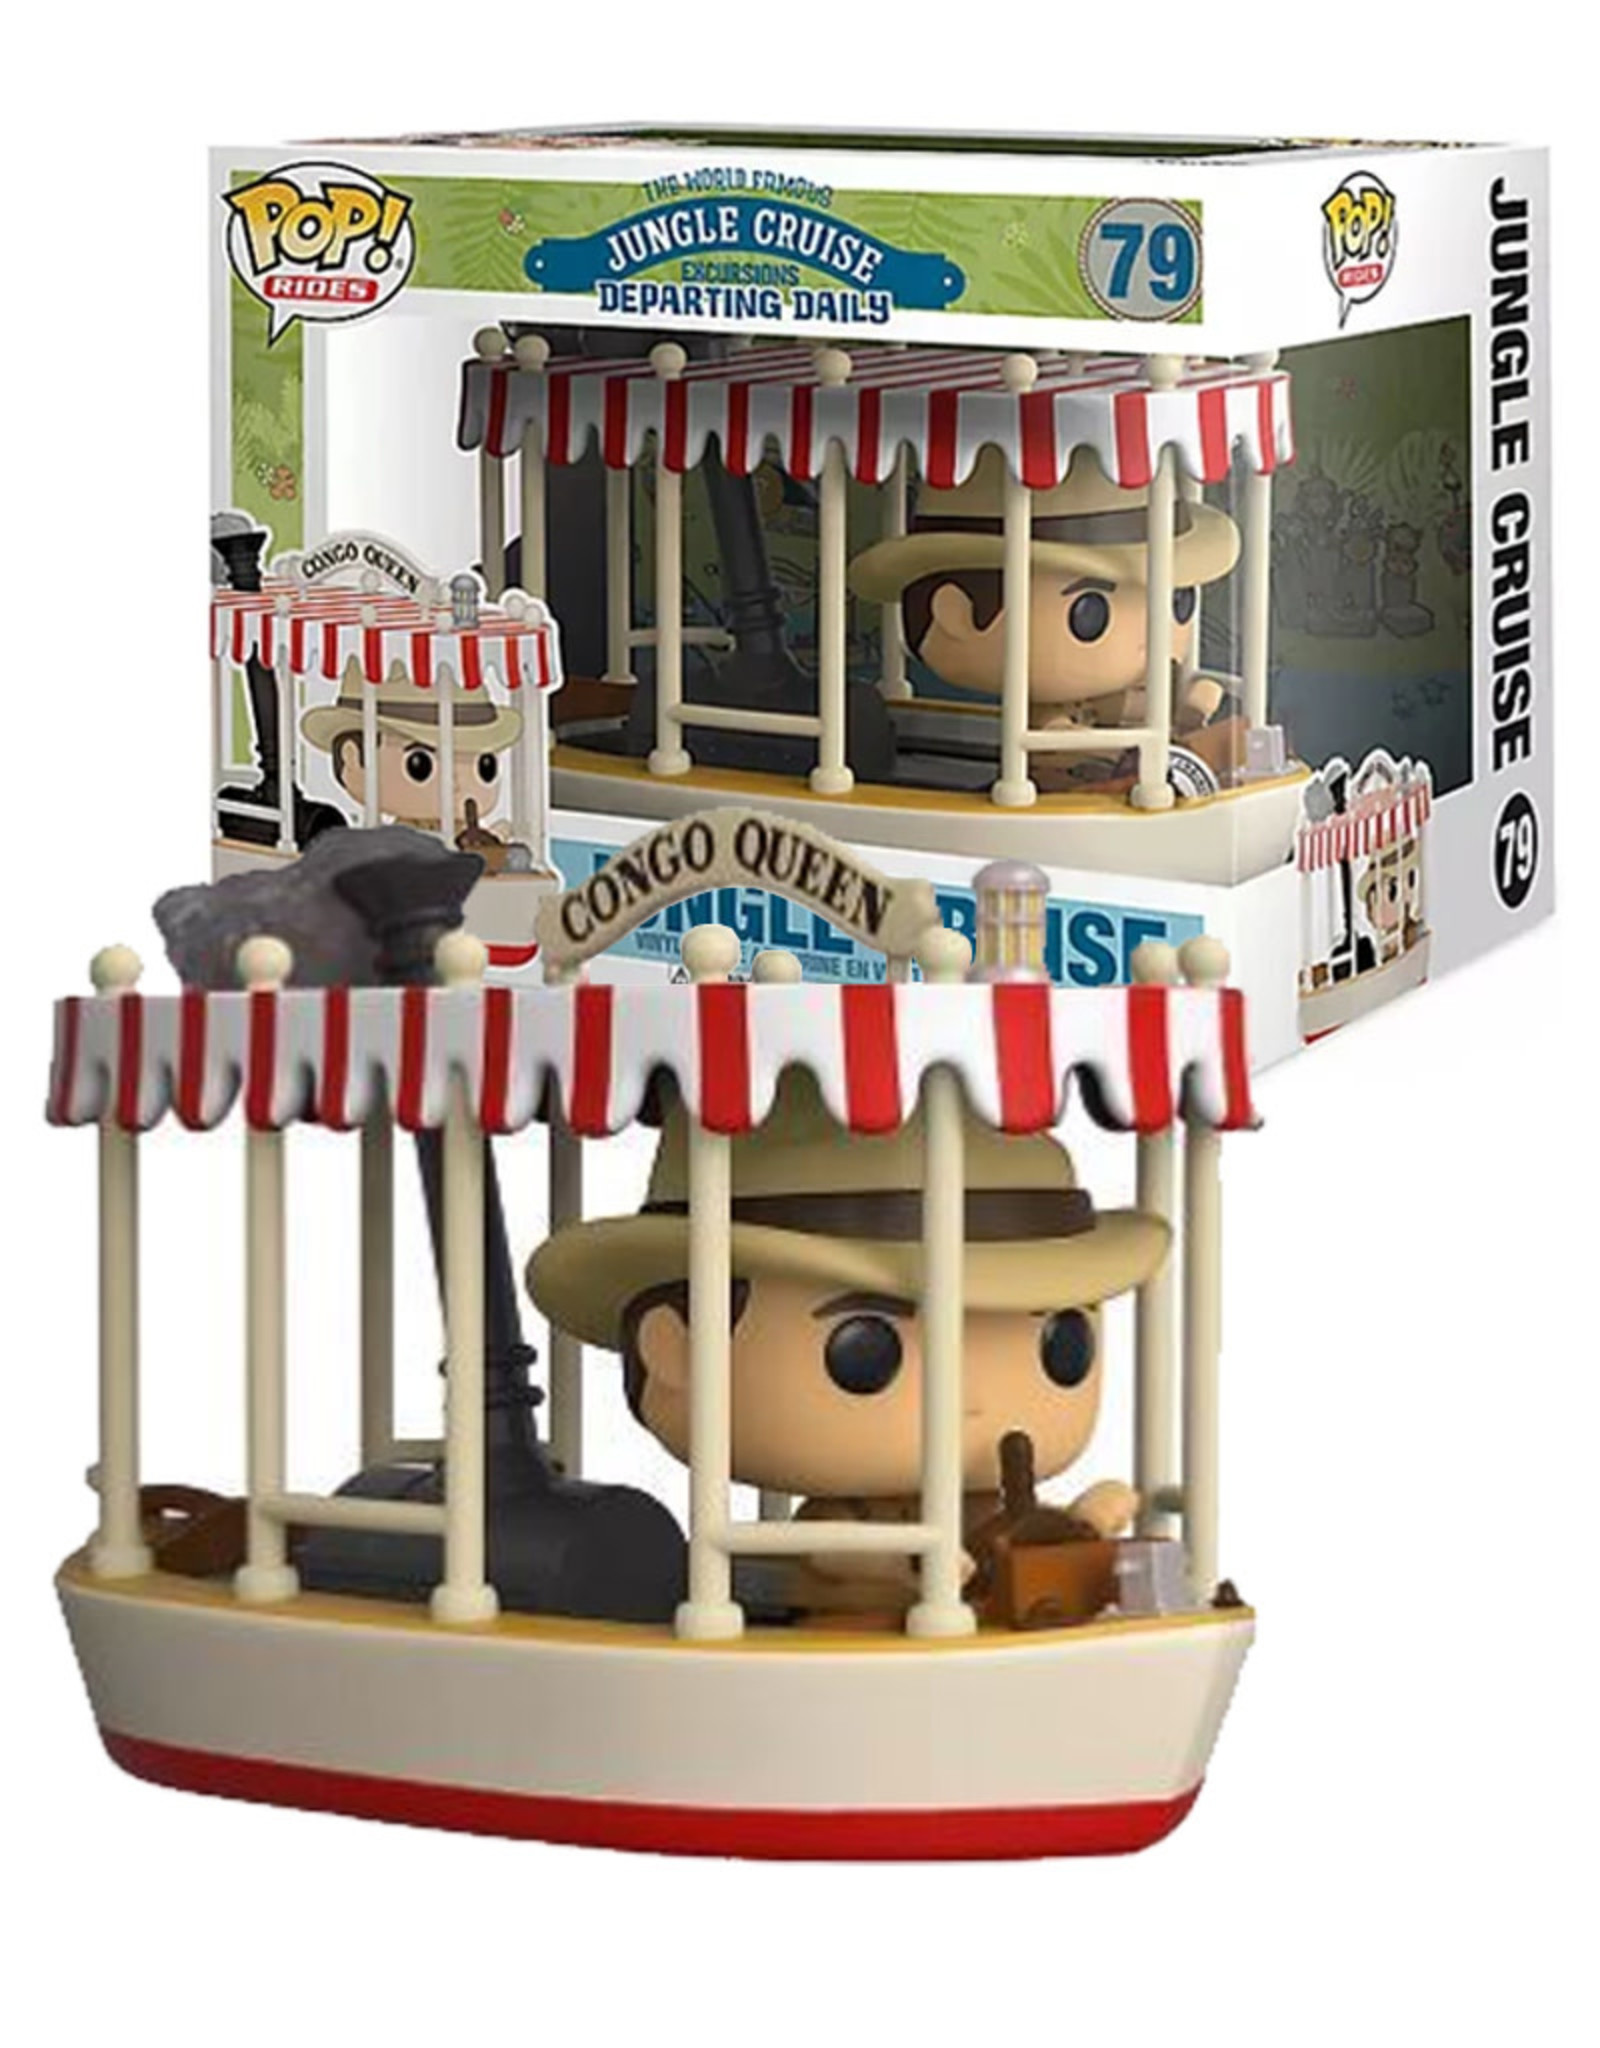 The Wolrd Famous Excursions 79 ( Funko Pop ) Jungle Cruise